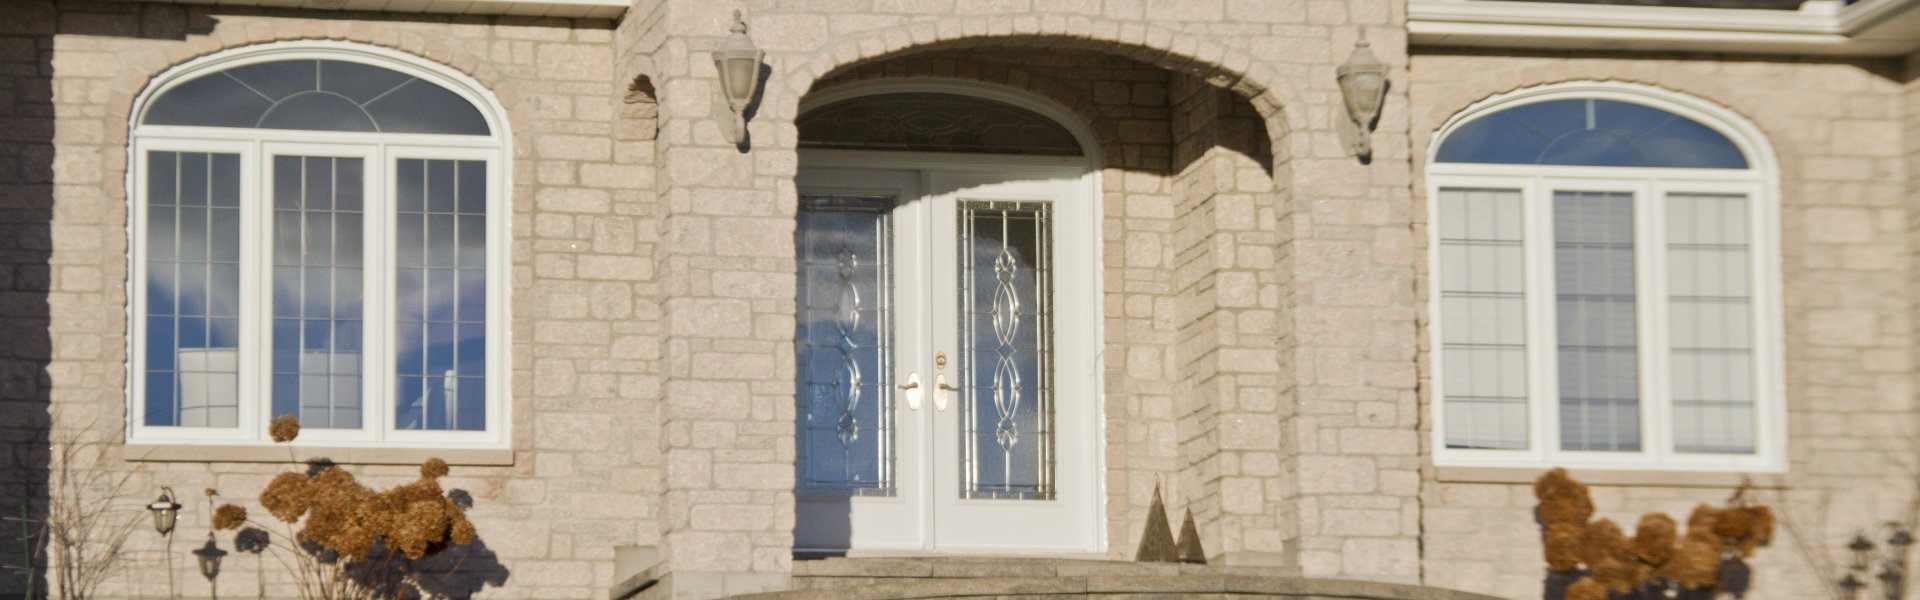 french_doors